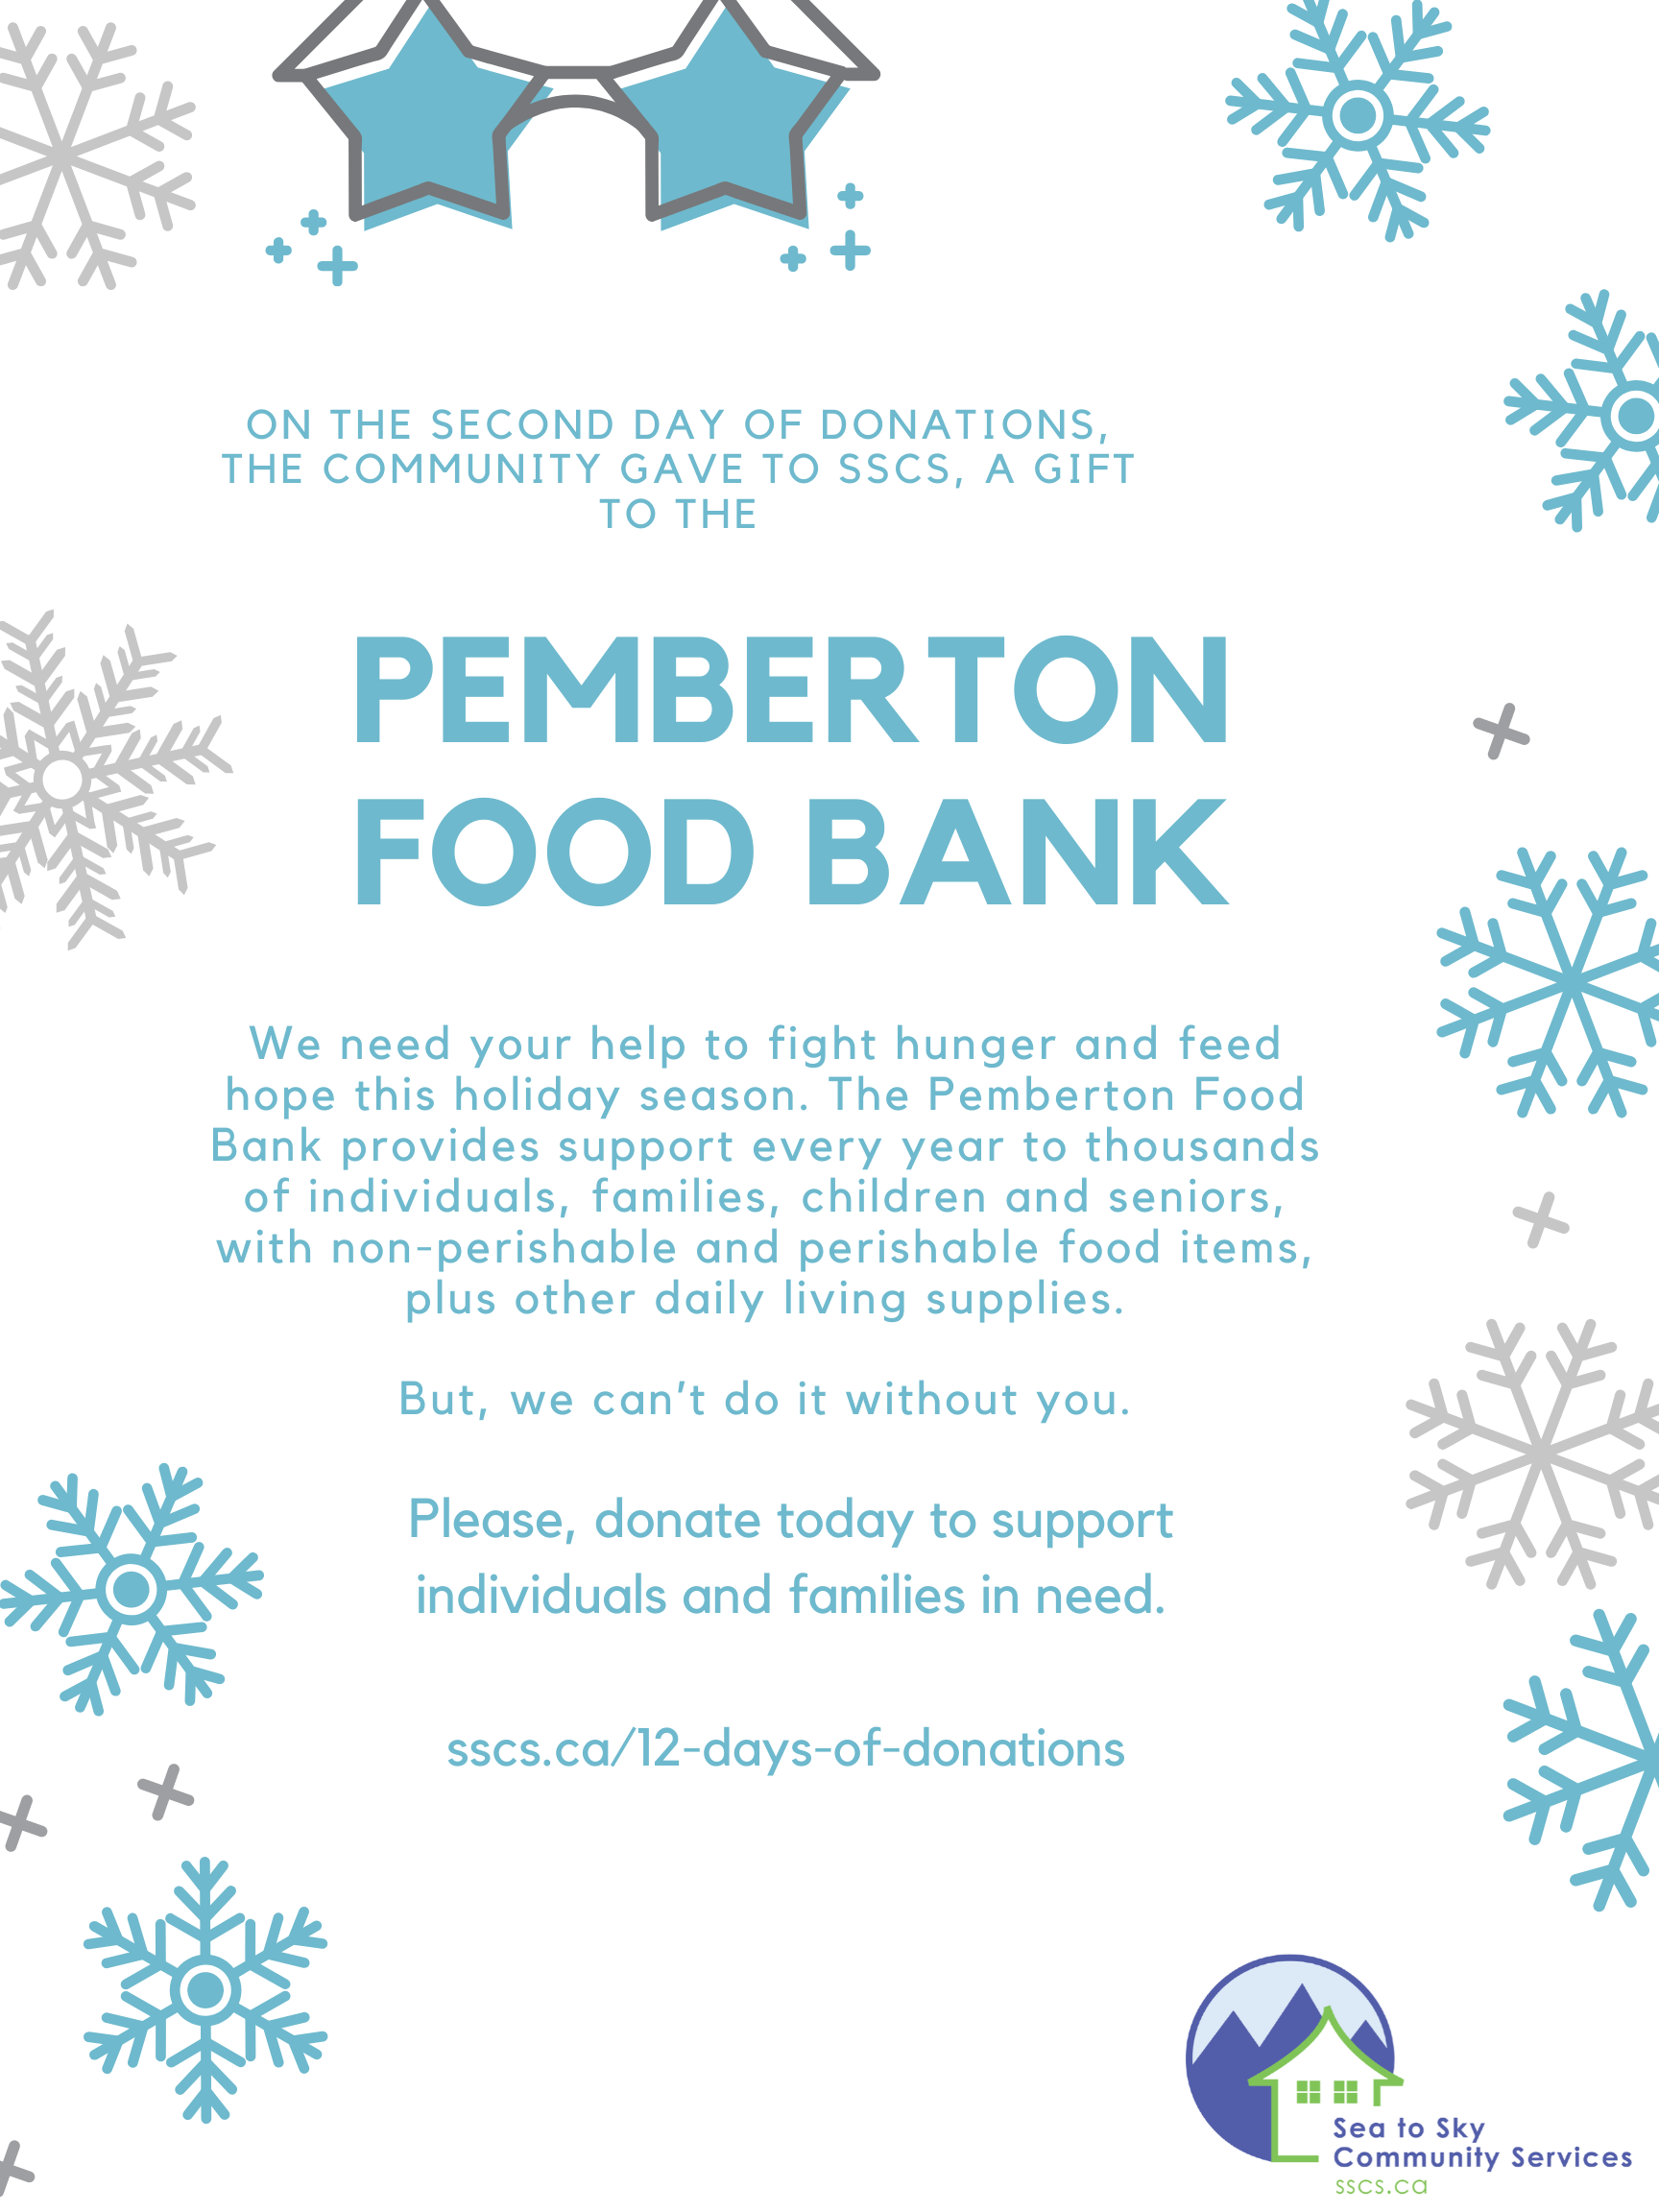 Day 2 - Pemberton Food Bank